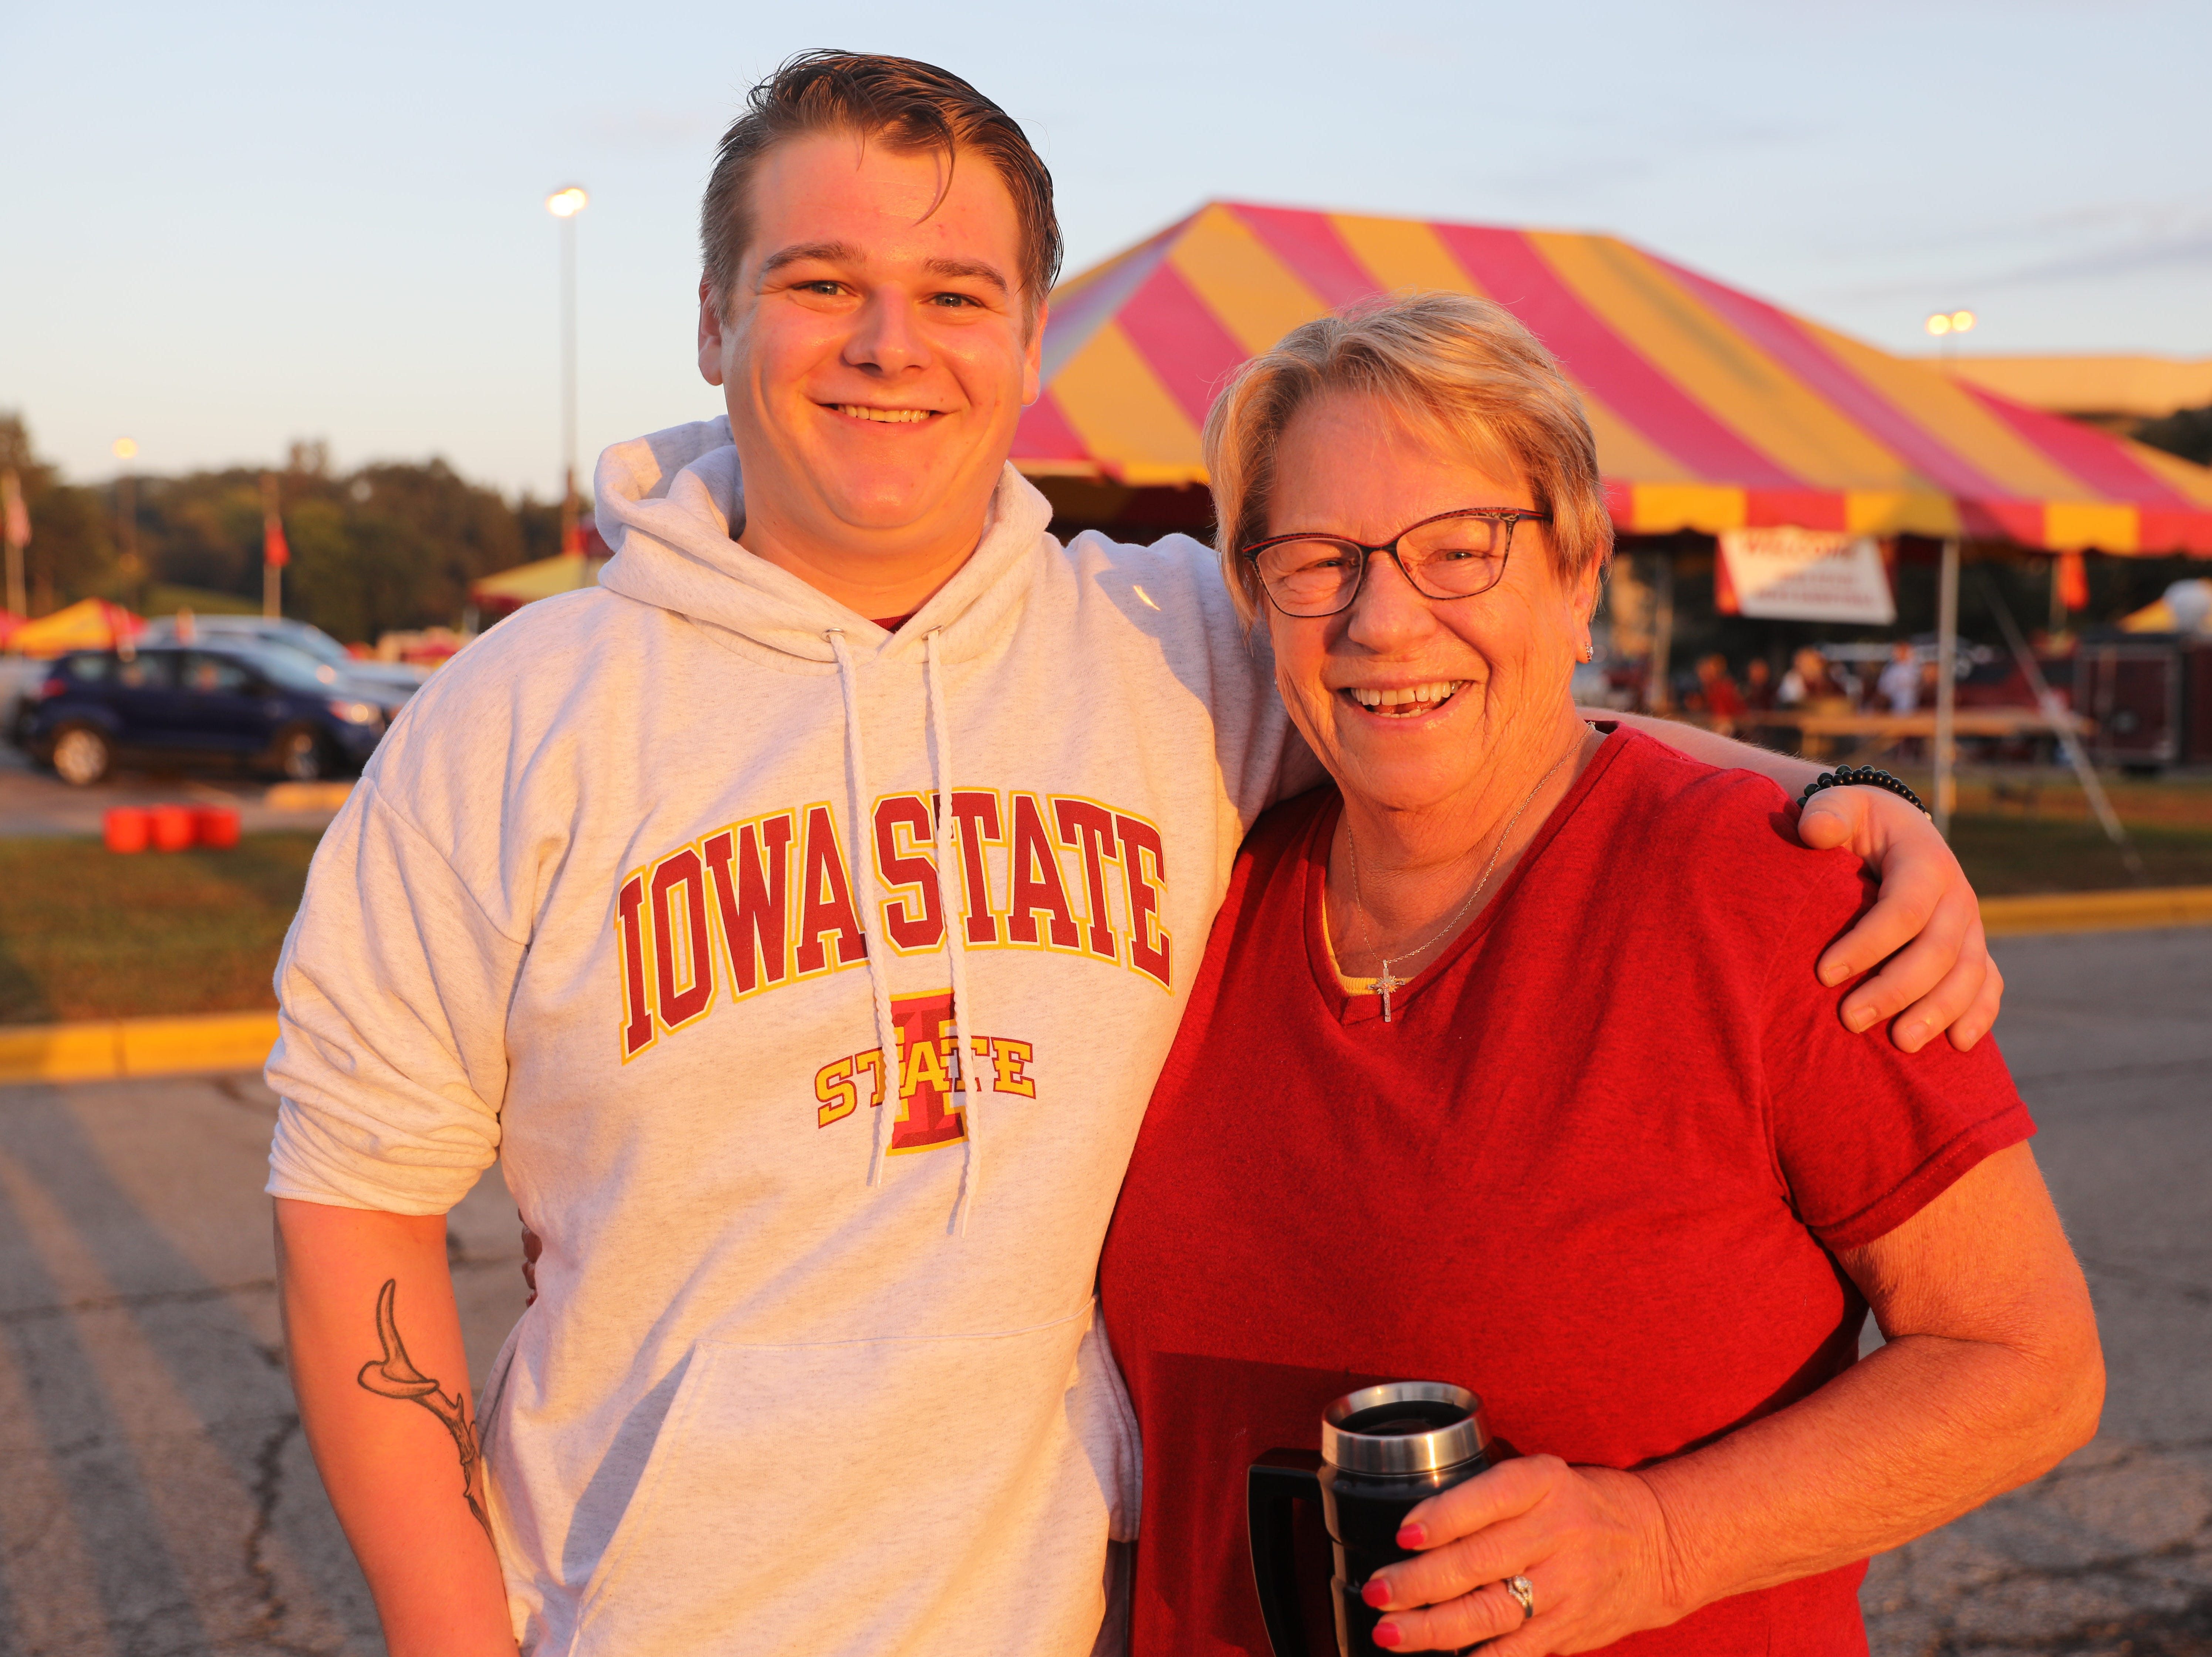 Jeremy Grzywacz, 21, of Ames and Barb Grzywacz of Huxley Saturday, Sept. 15, 2018, before the Iowa State football game against Oklahoma in Ames.